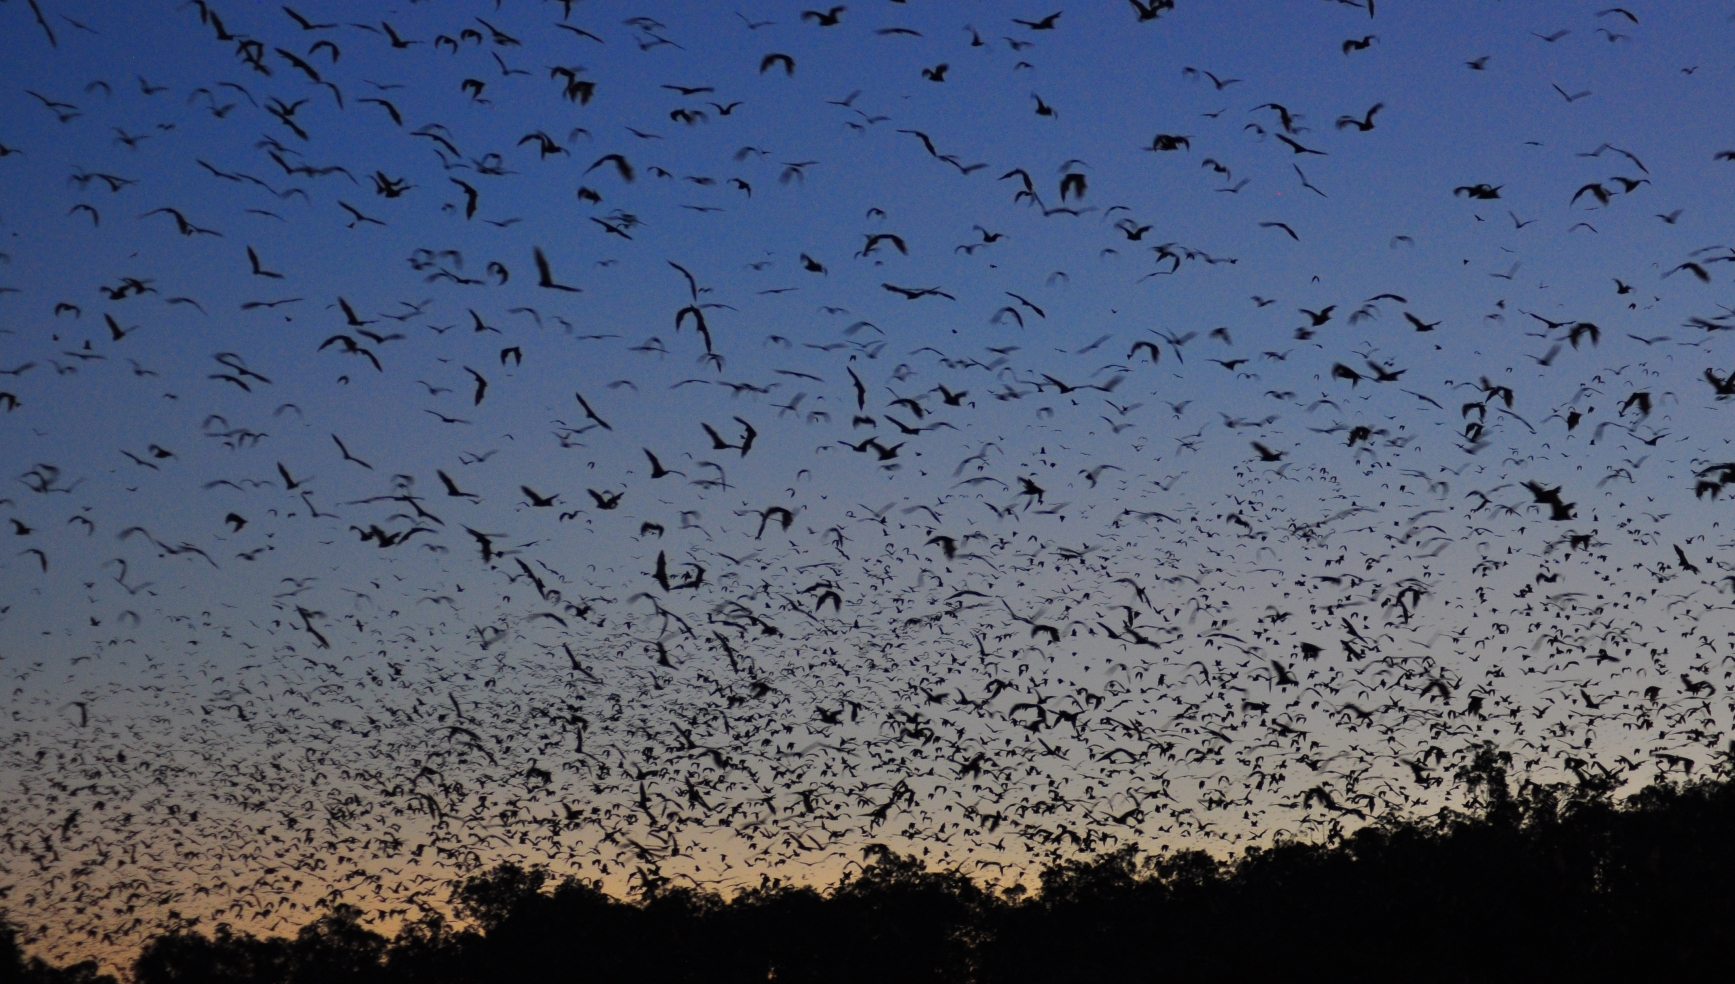 Large numbers of flying foxes arrive if there is a large food source but leads some people to think they do not need conservation.